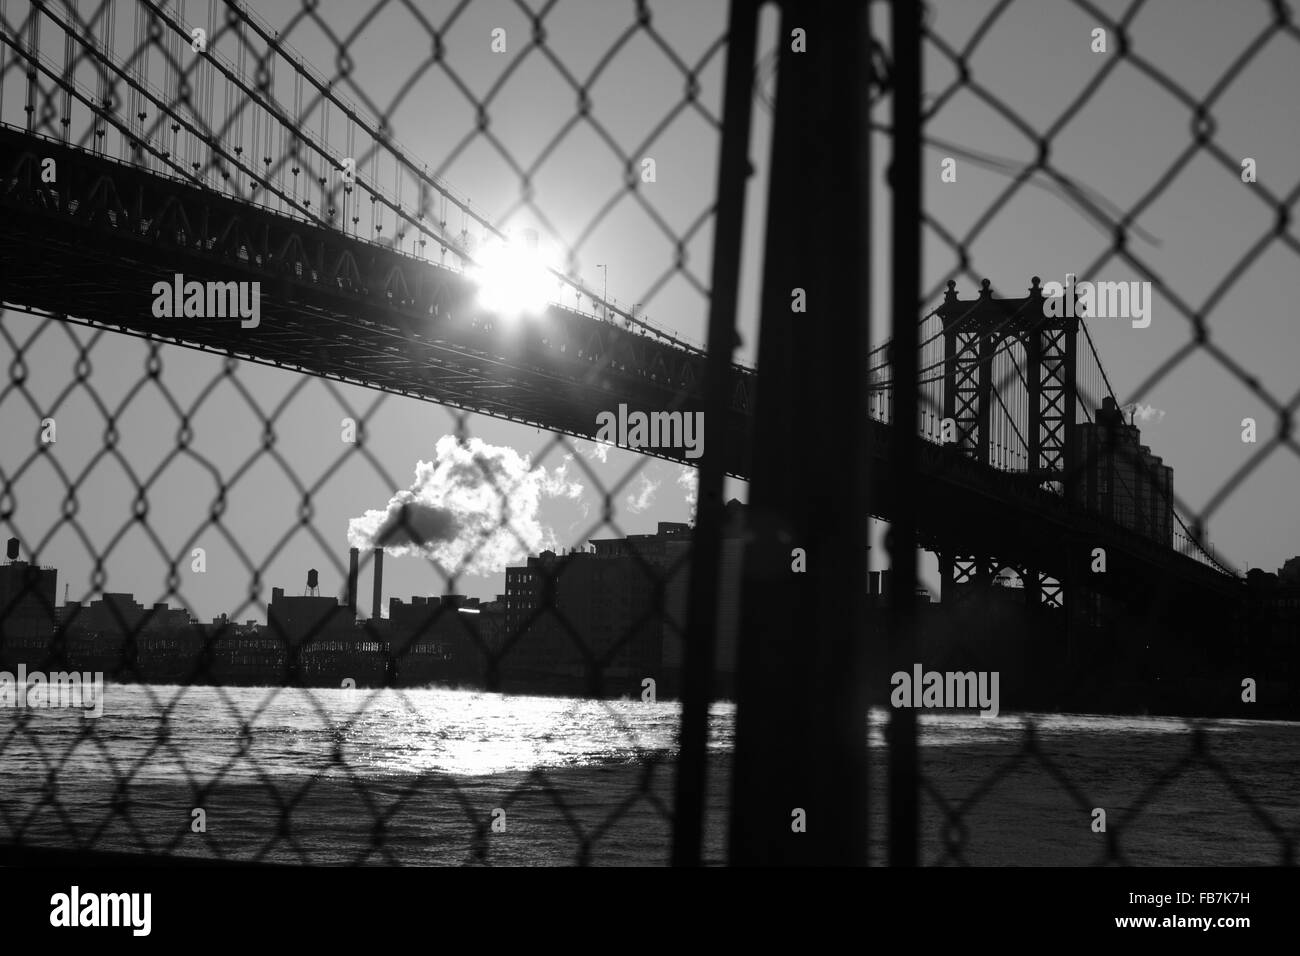 Distorted industrial view of Manhattan Bridge waterfront New York City through a wire safety fence. Monochrome, - Stock Image